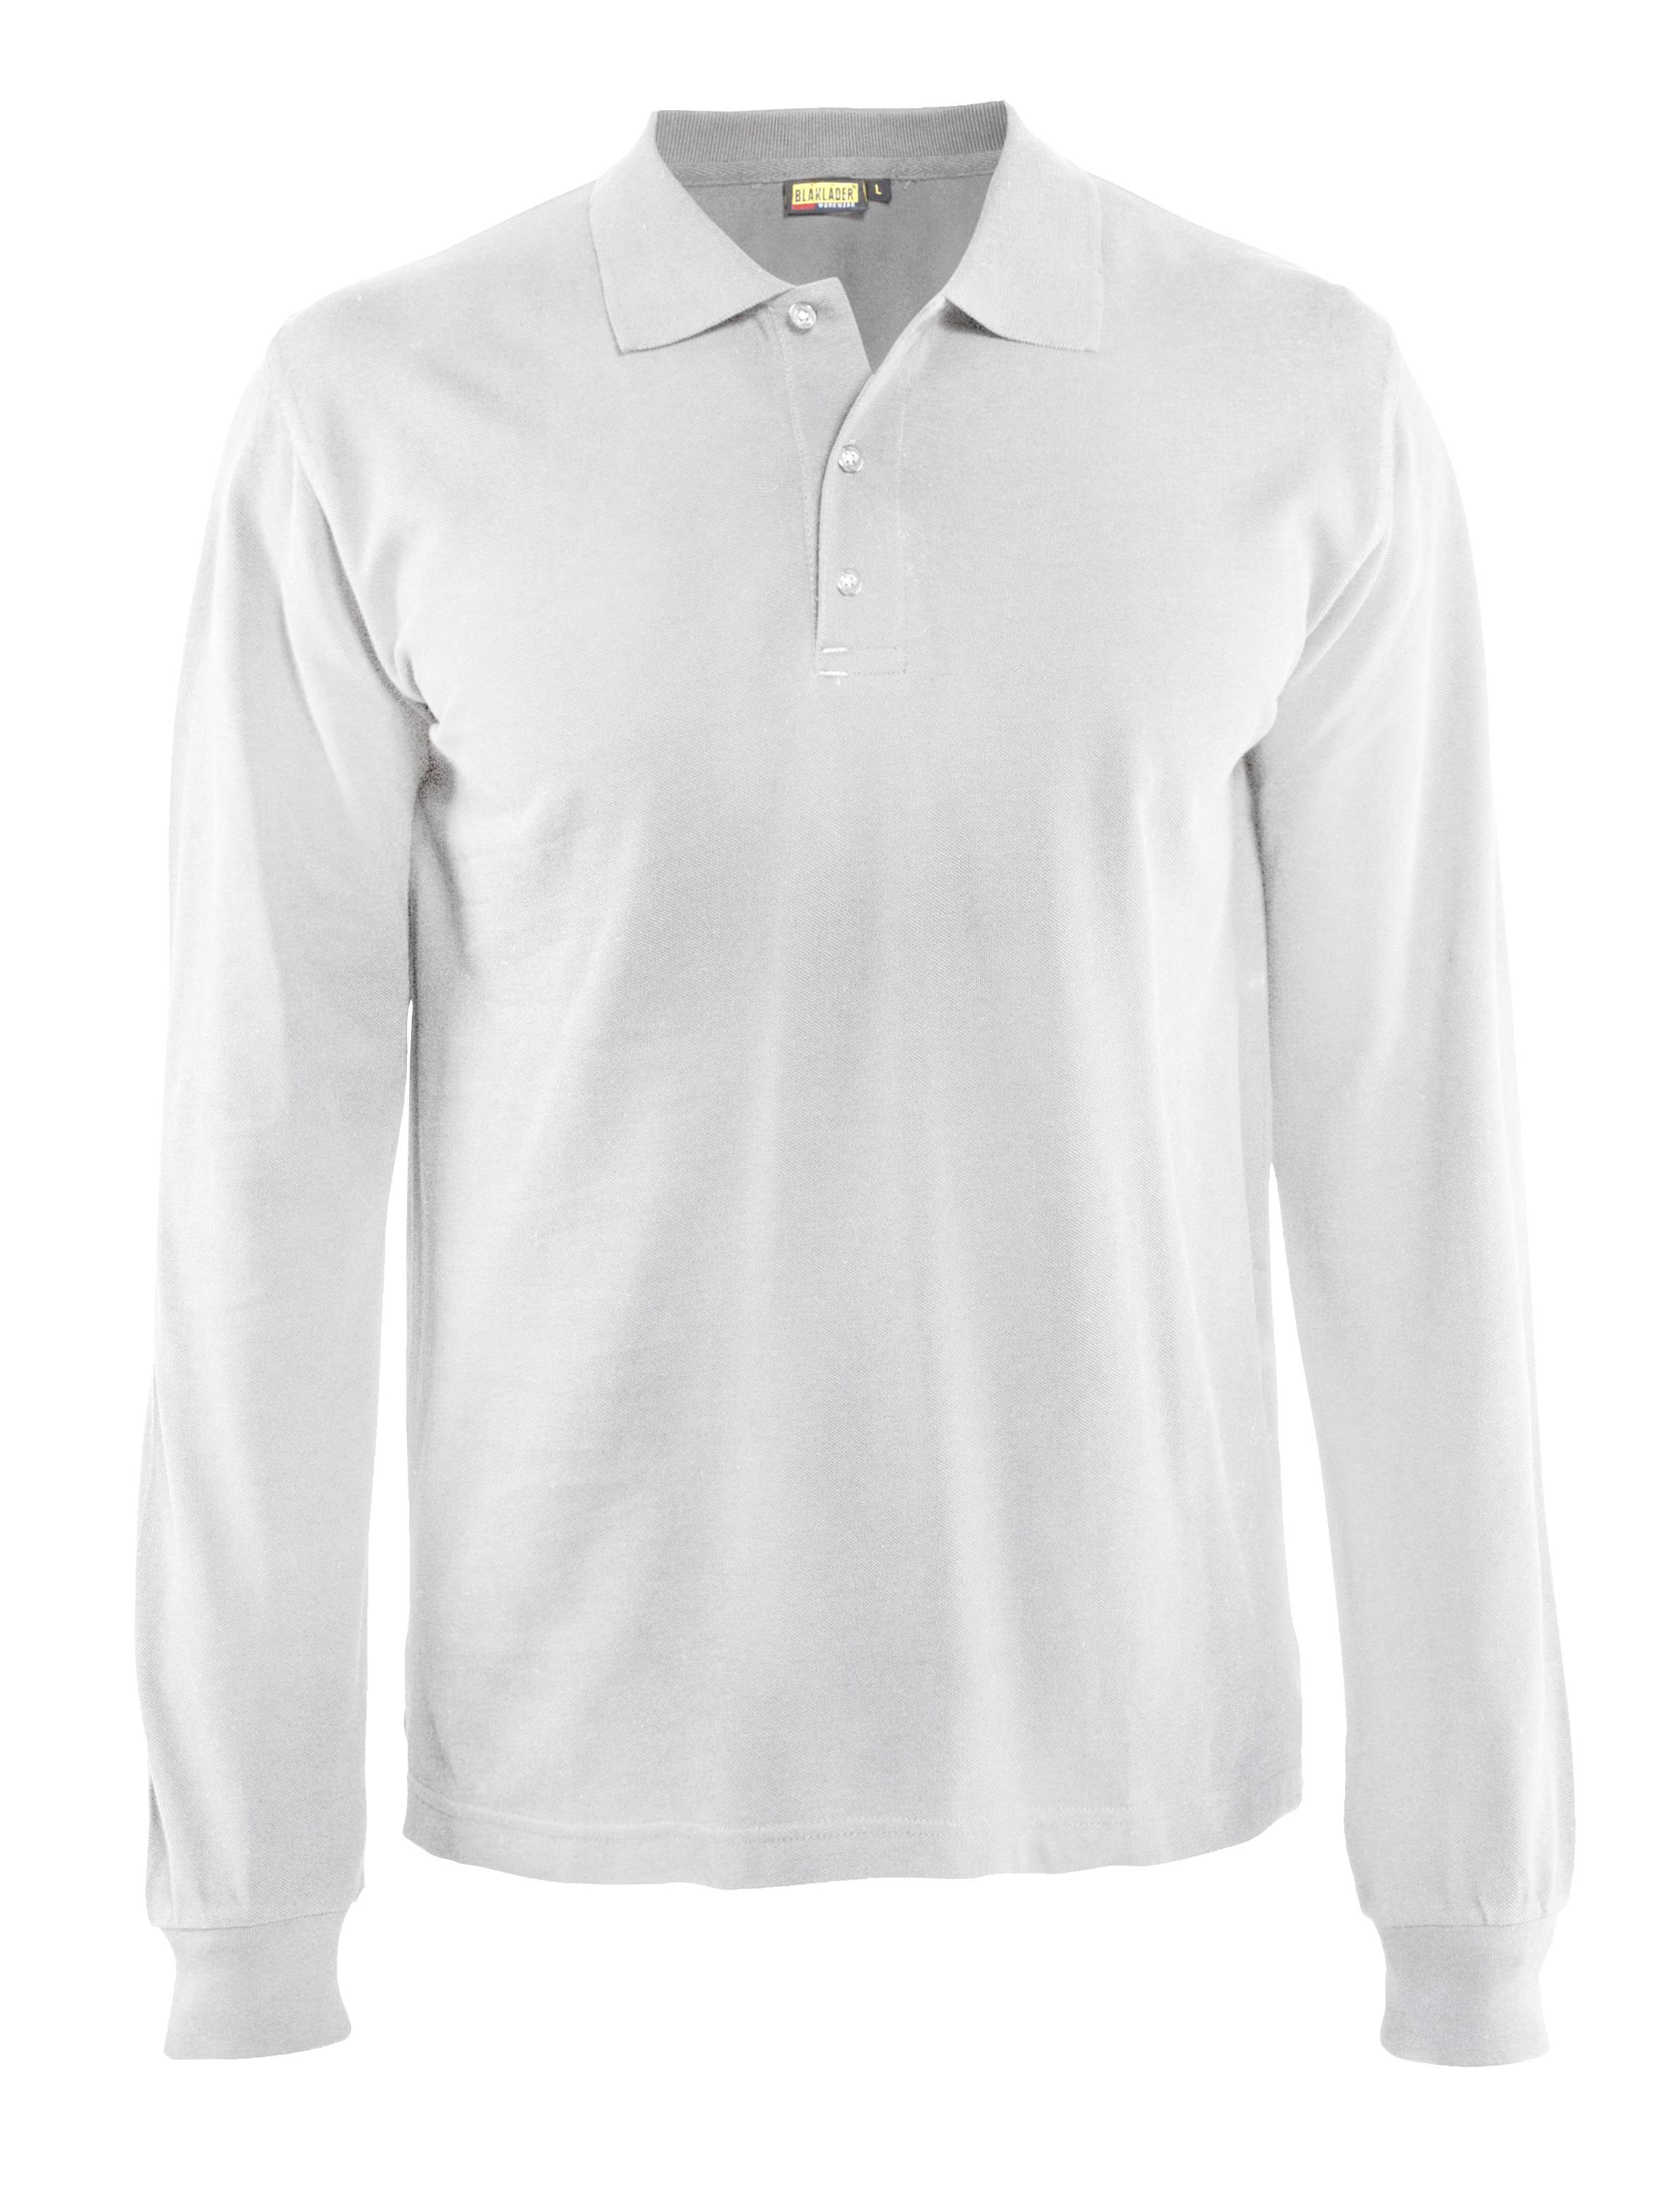 Blaklader Polo shirts 33881050 wit(1000)